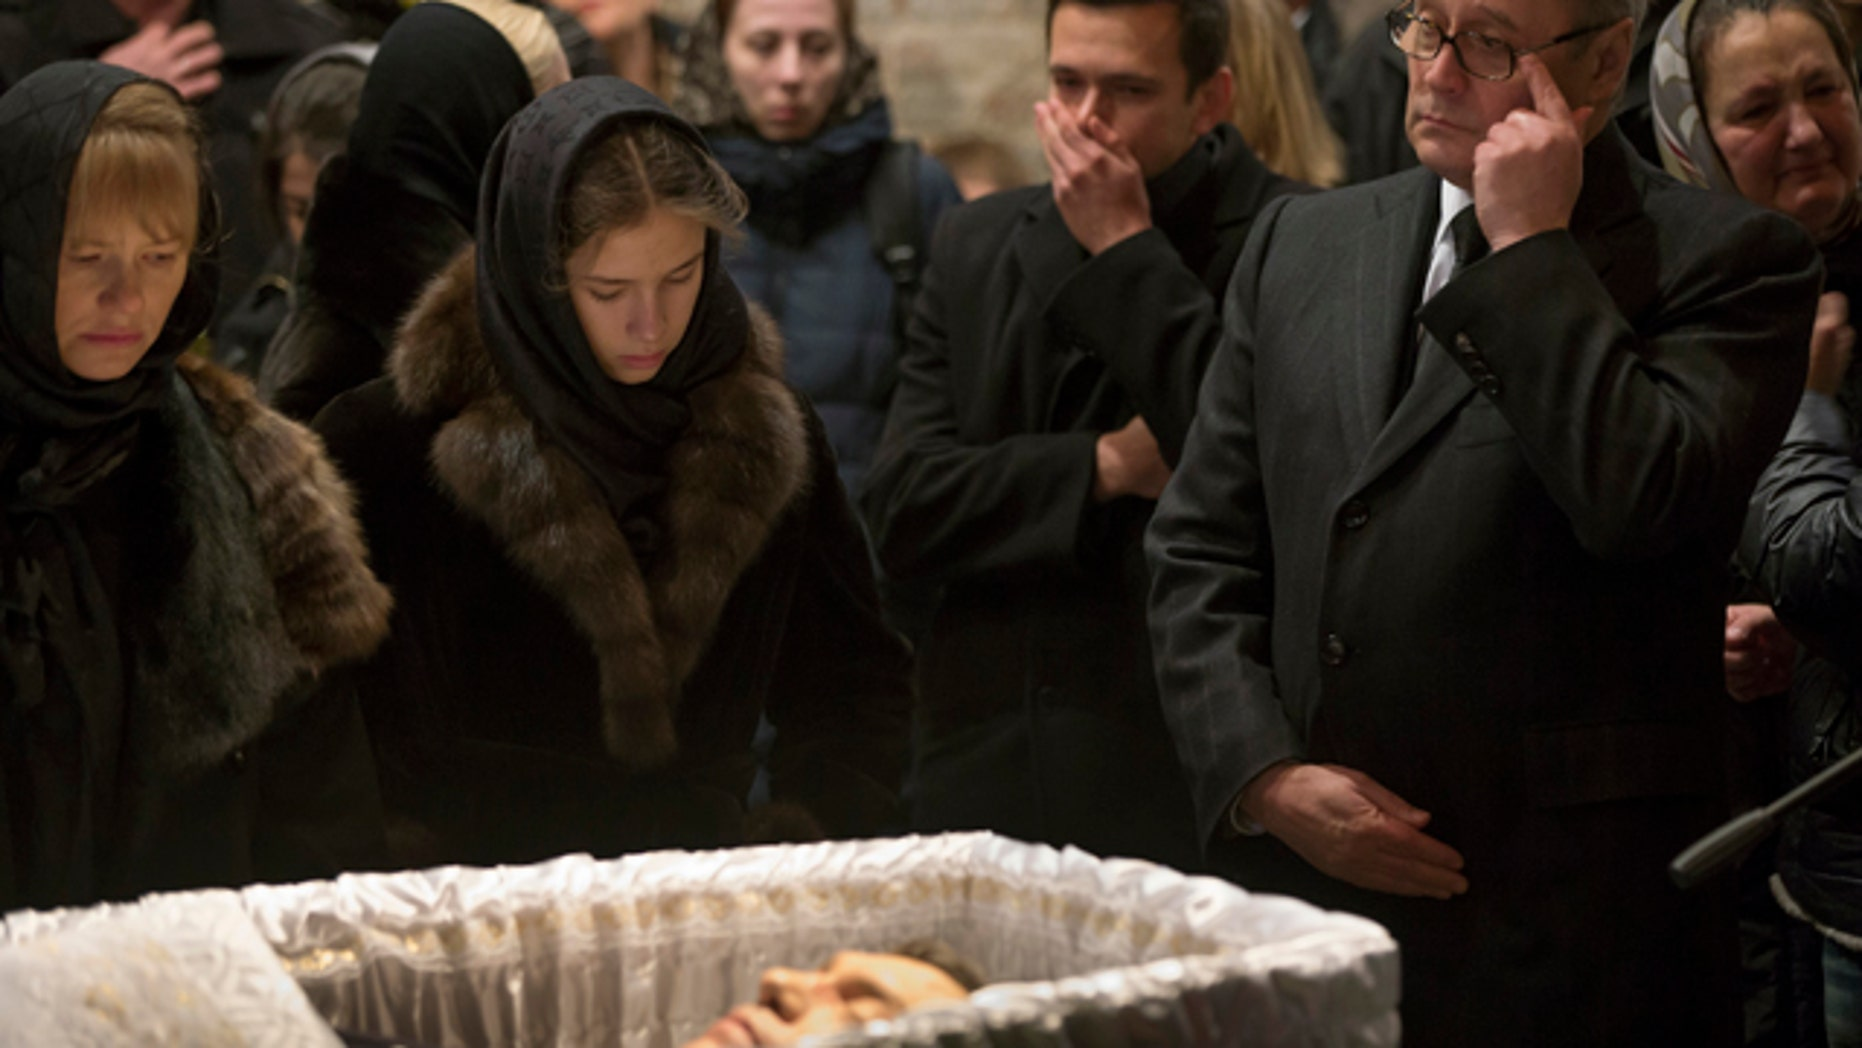 March 3, 2015: Opposition leaders, former Russian Prime Minister Mikhail Kasyanov, right, and Ilya Yashin, second right, and other relatives and friends pay their last respects by the coffin of Boris Nemtsov, a charismatic Russian opposition leader and sharp critic of President Vladimir Putin, during a farewell ceremony inside the Sakharov center in Moscow. (AP Photo/Pavel Golovkin)